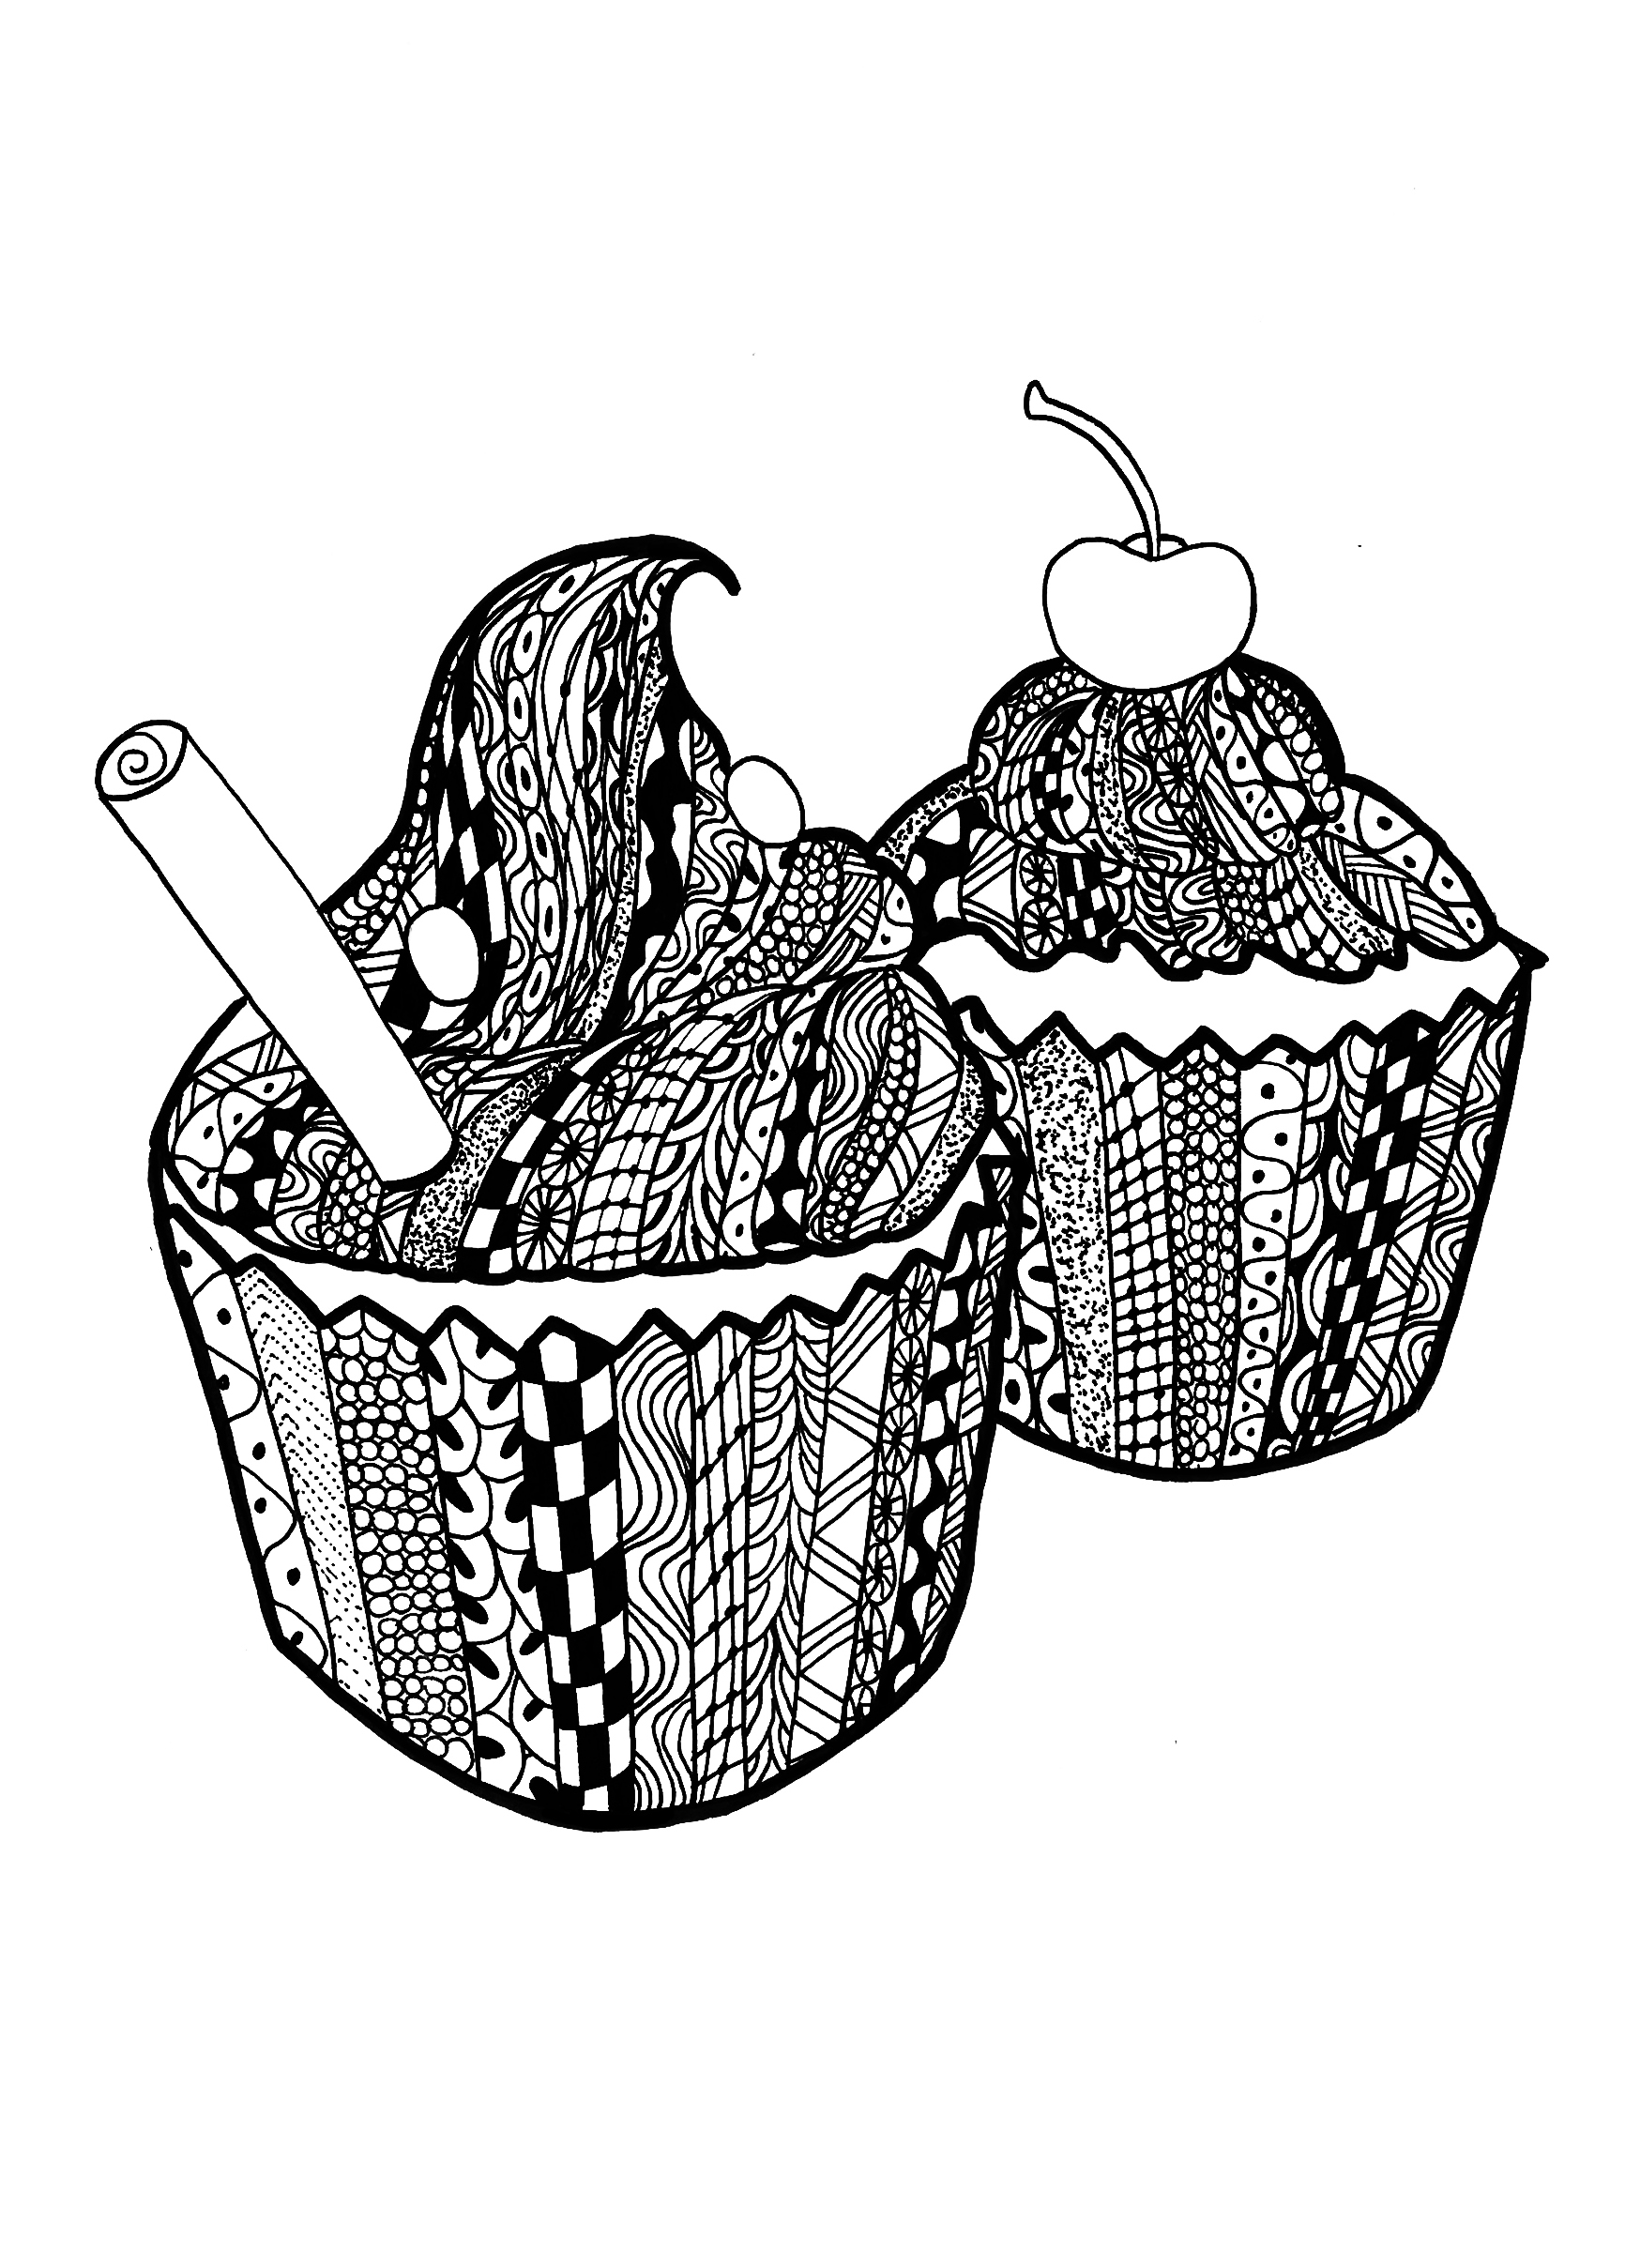 Free printable zentangle coloring pages for adults - Coloring Page Adults Zentangle Cupcakes Celine